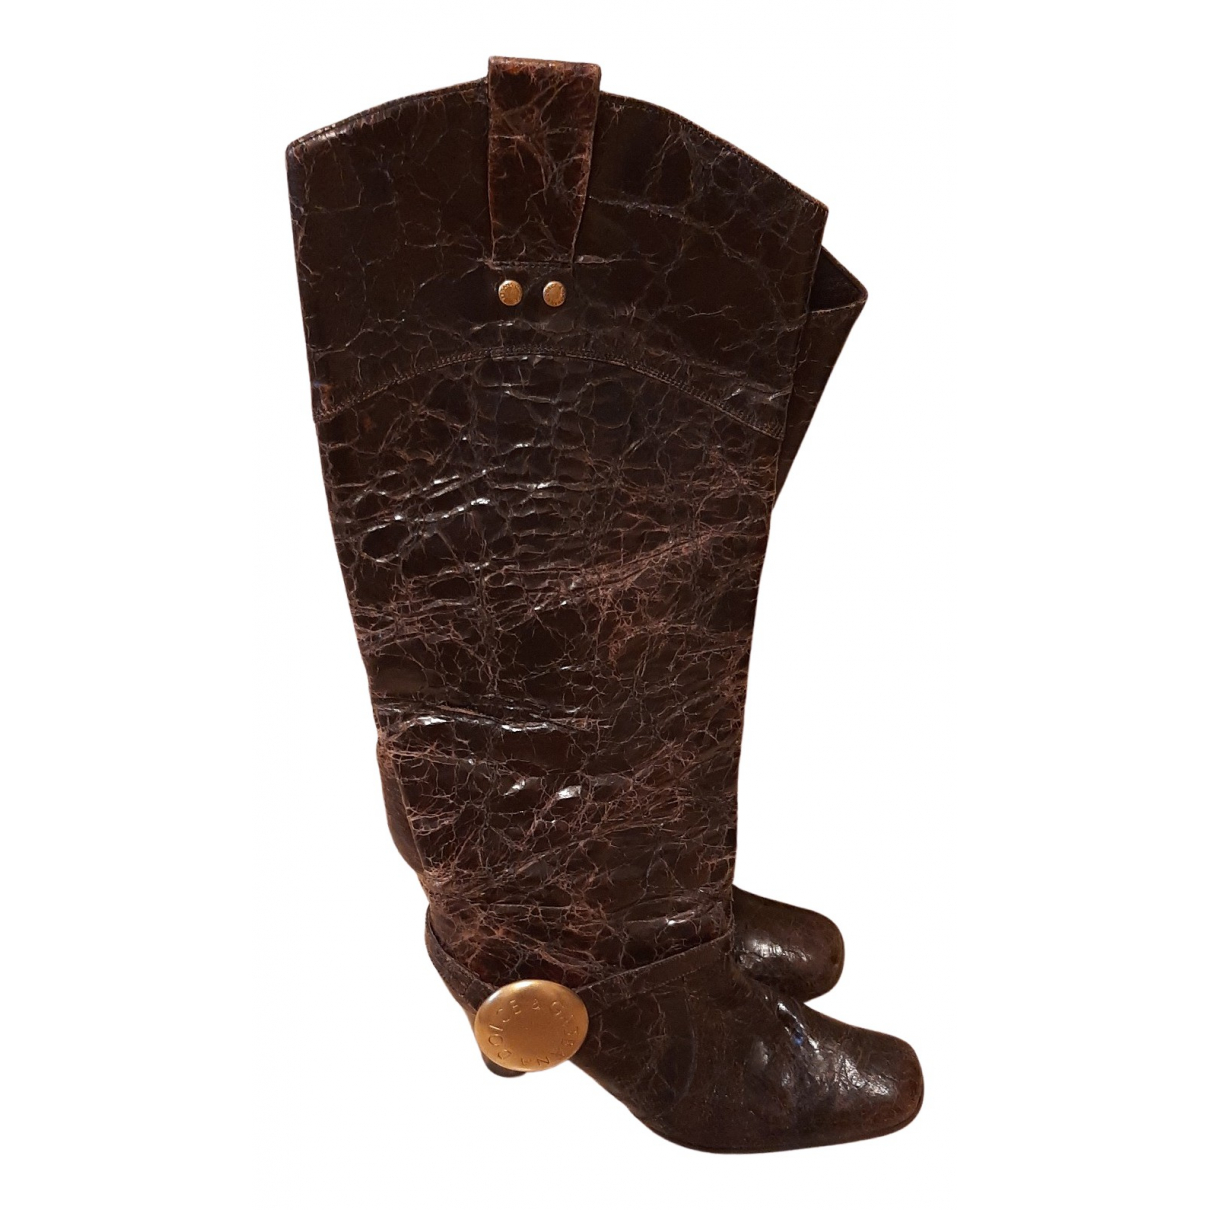 Dolce & Gabbana N Brown Leather Boots for Women 39.5 EU